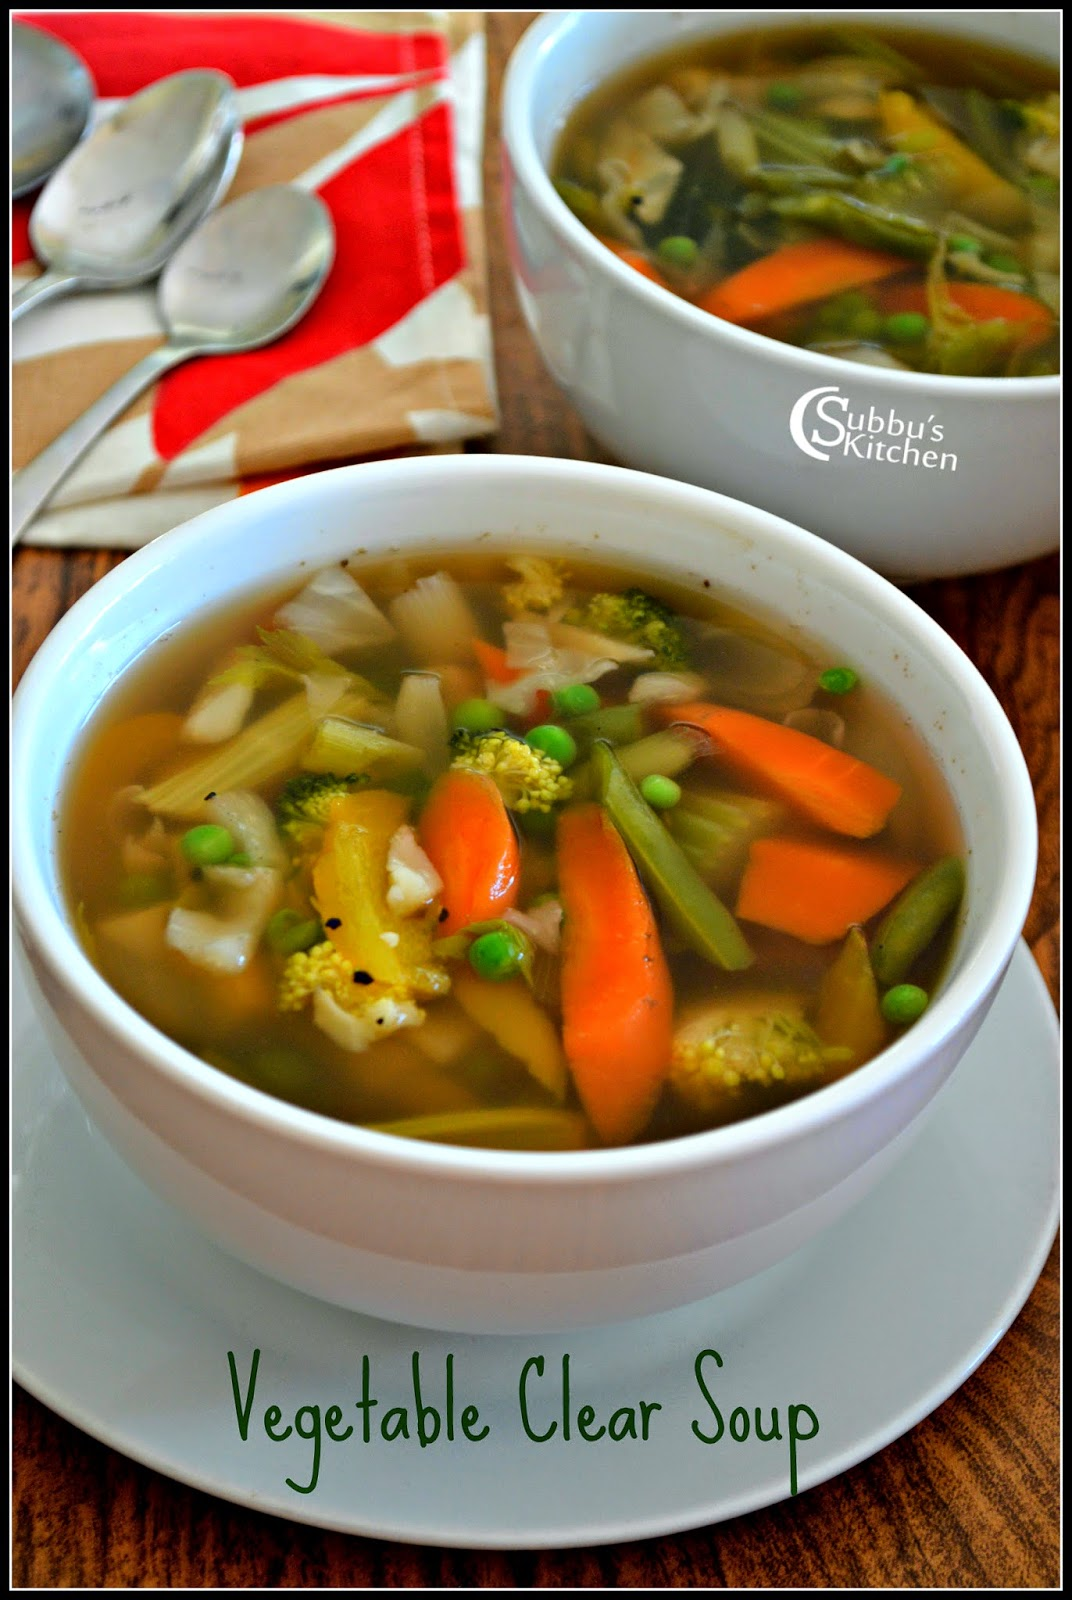 Clear Vegetable Soup Recipe |  Vegetable Clear Soup Recipe